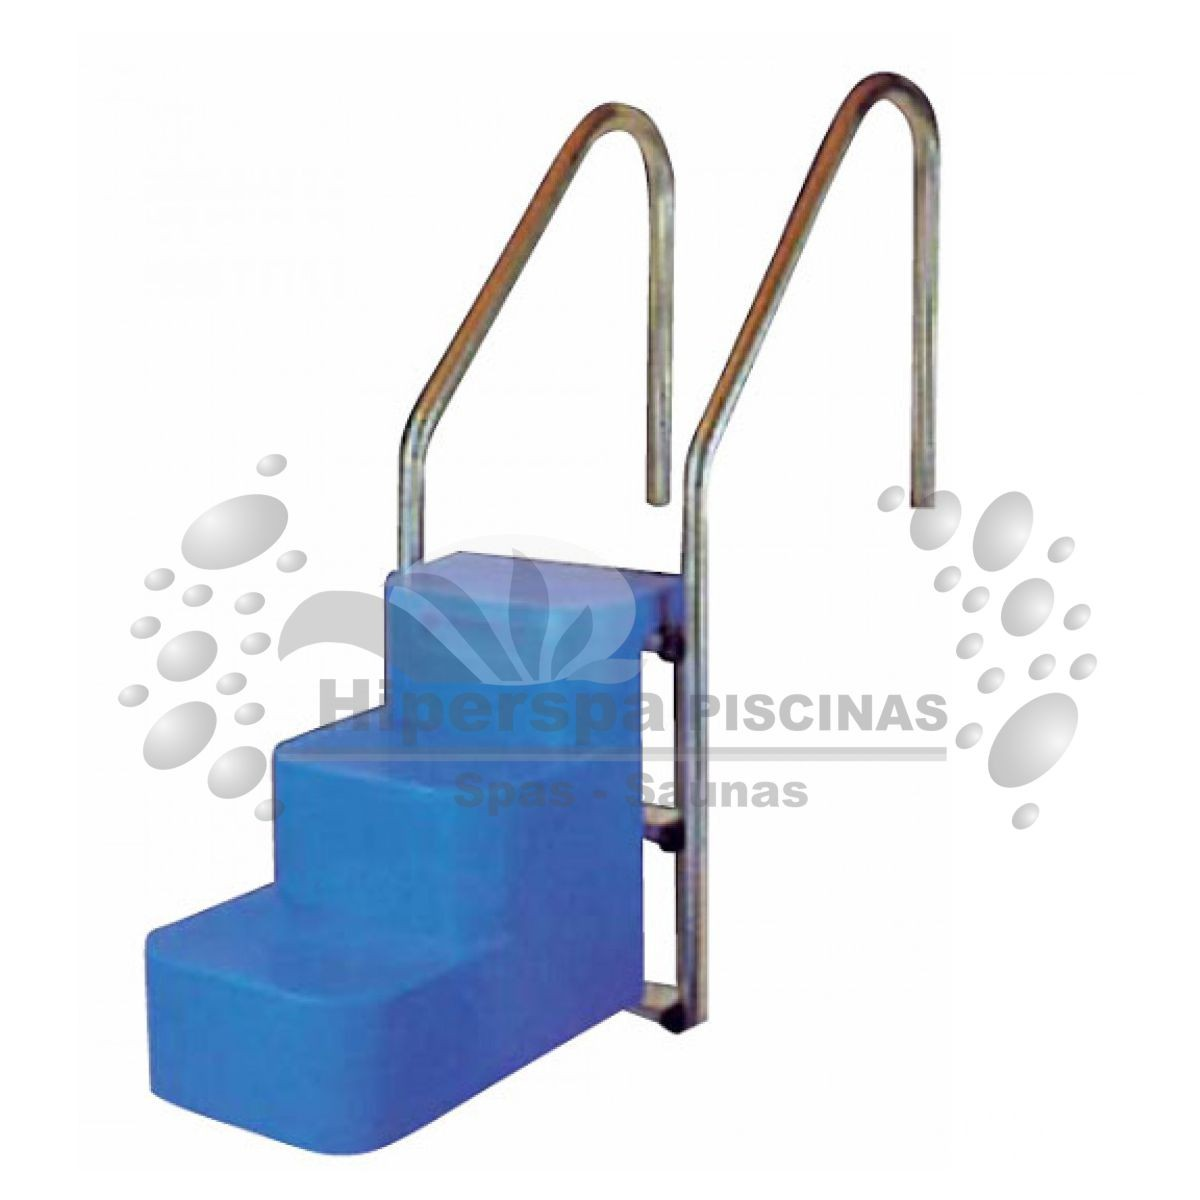 Escalera salvamascotas para piscina hiperspa for Escaleras para piscinas desmontables carrefour